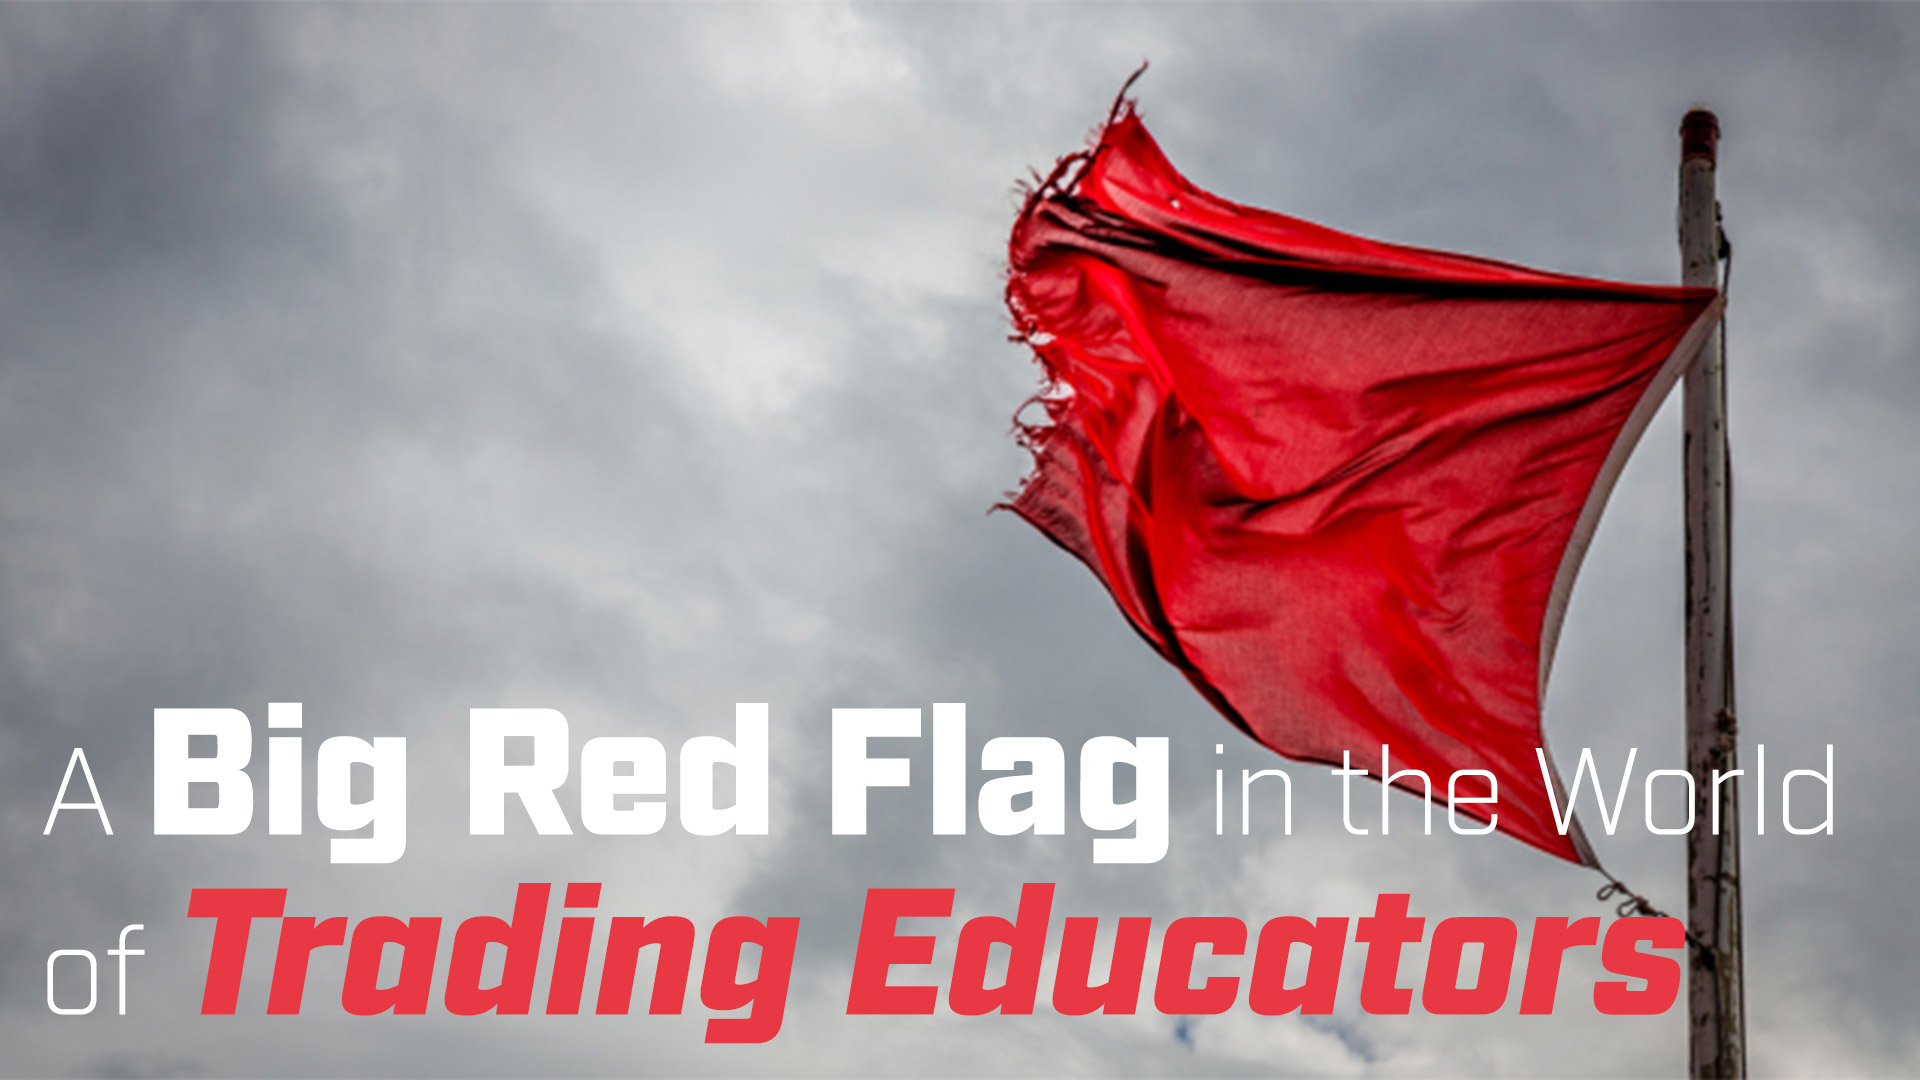 A Big Red Flag in the World of Trading Educators